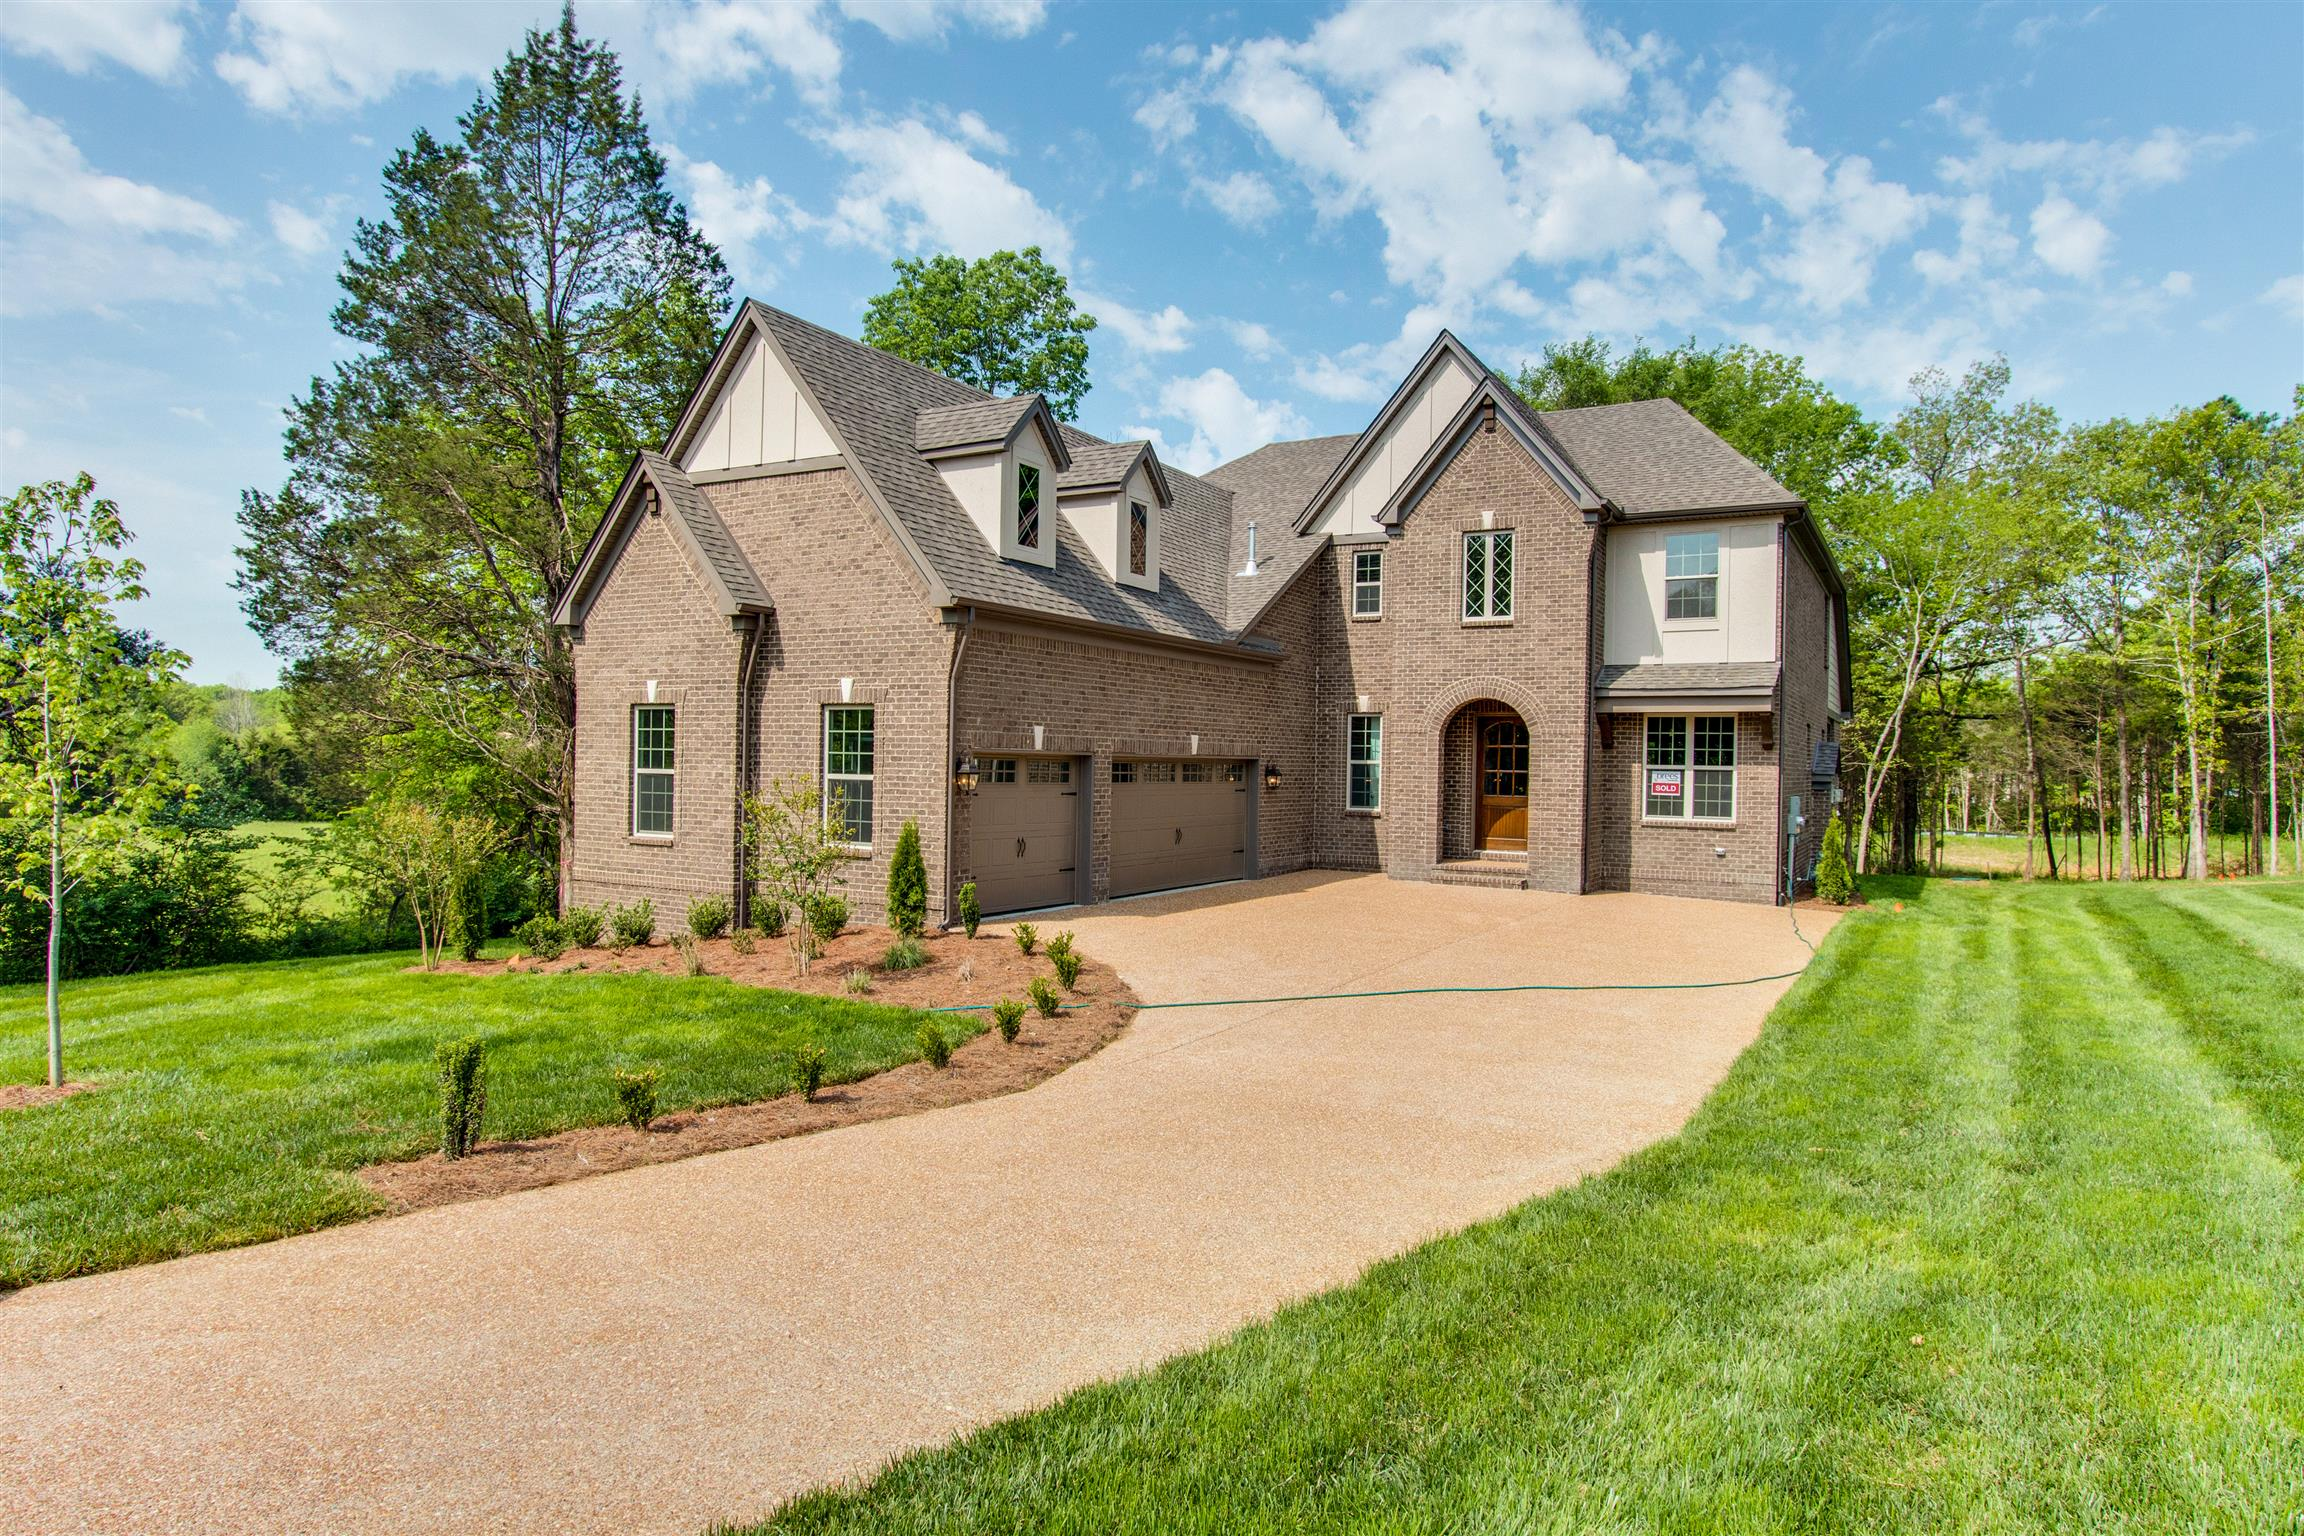 112 Asher Downs Circle #3, Nolensville, TN 37135